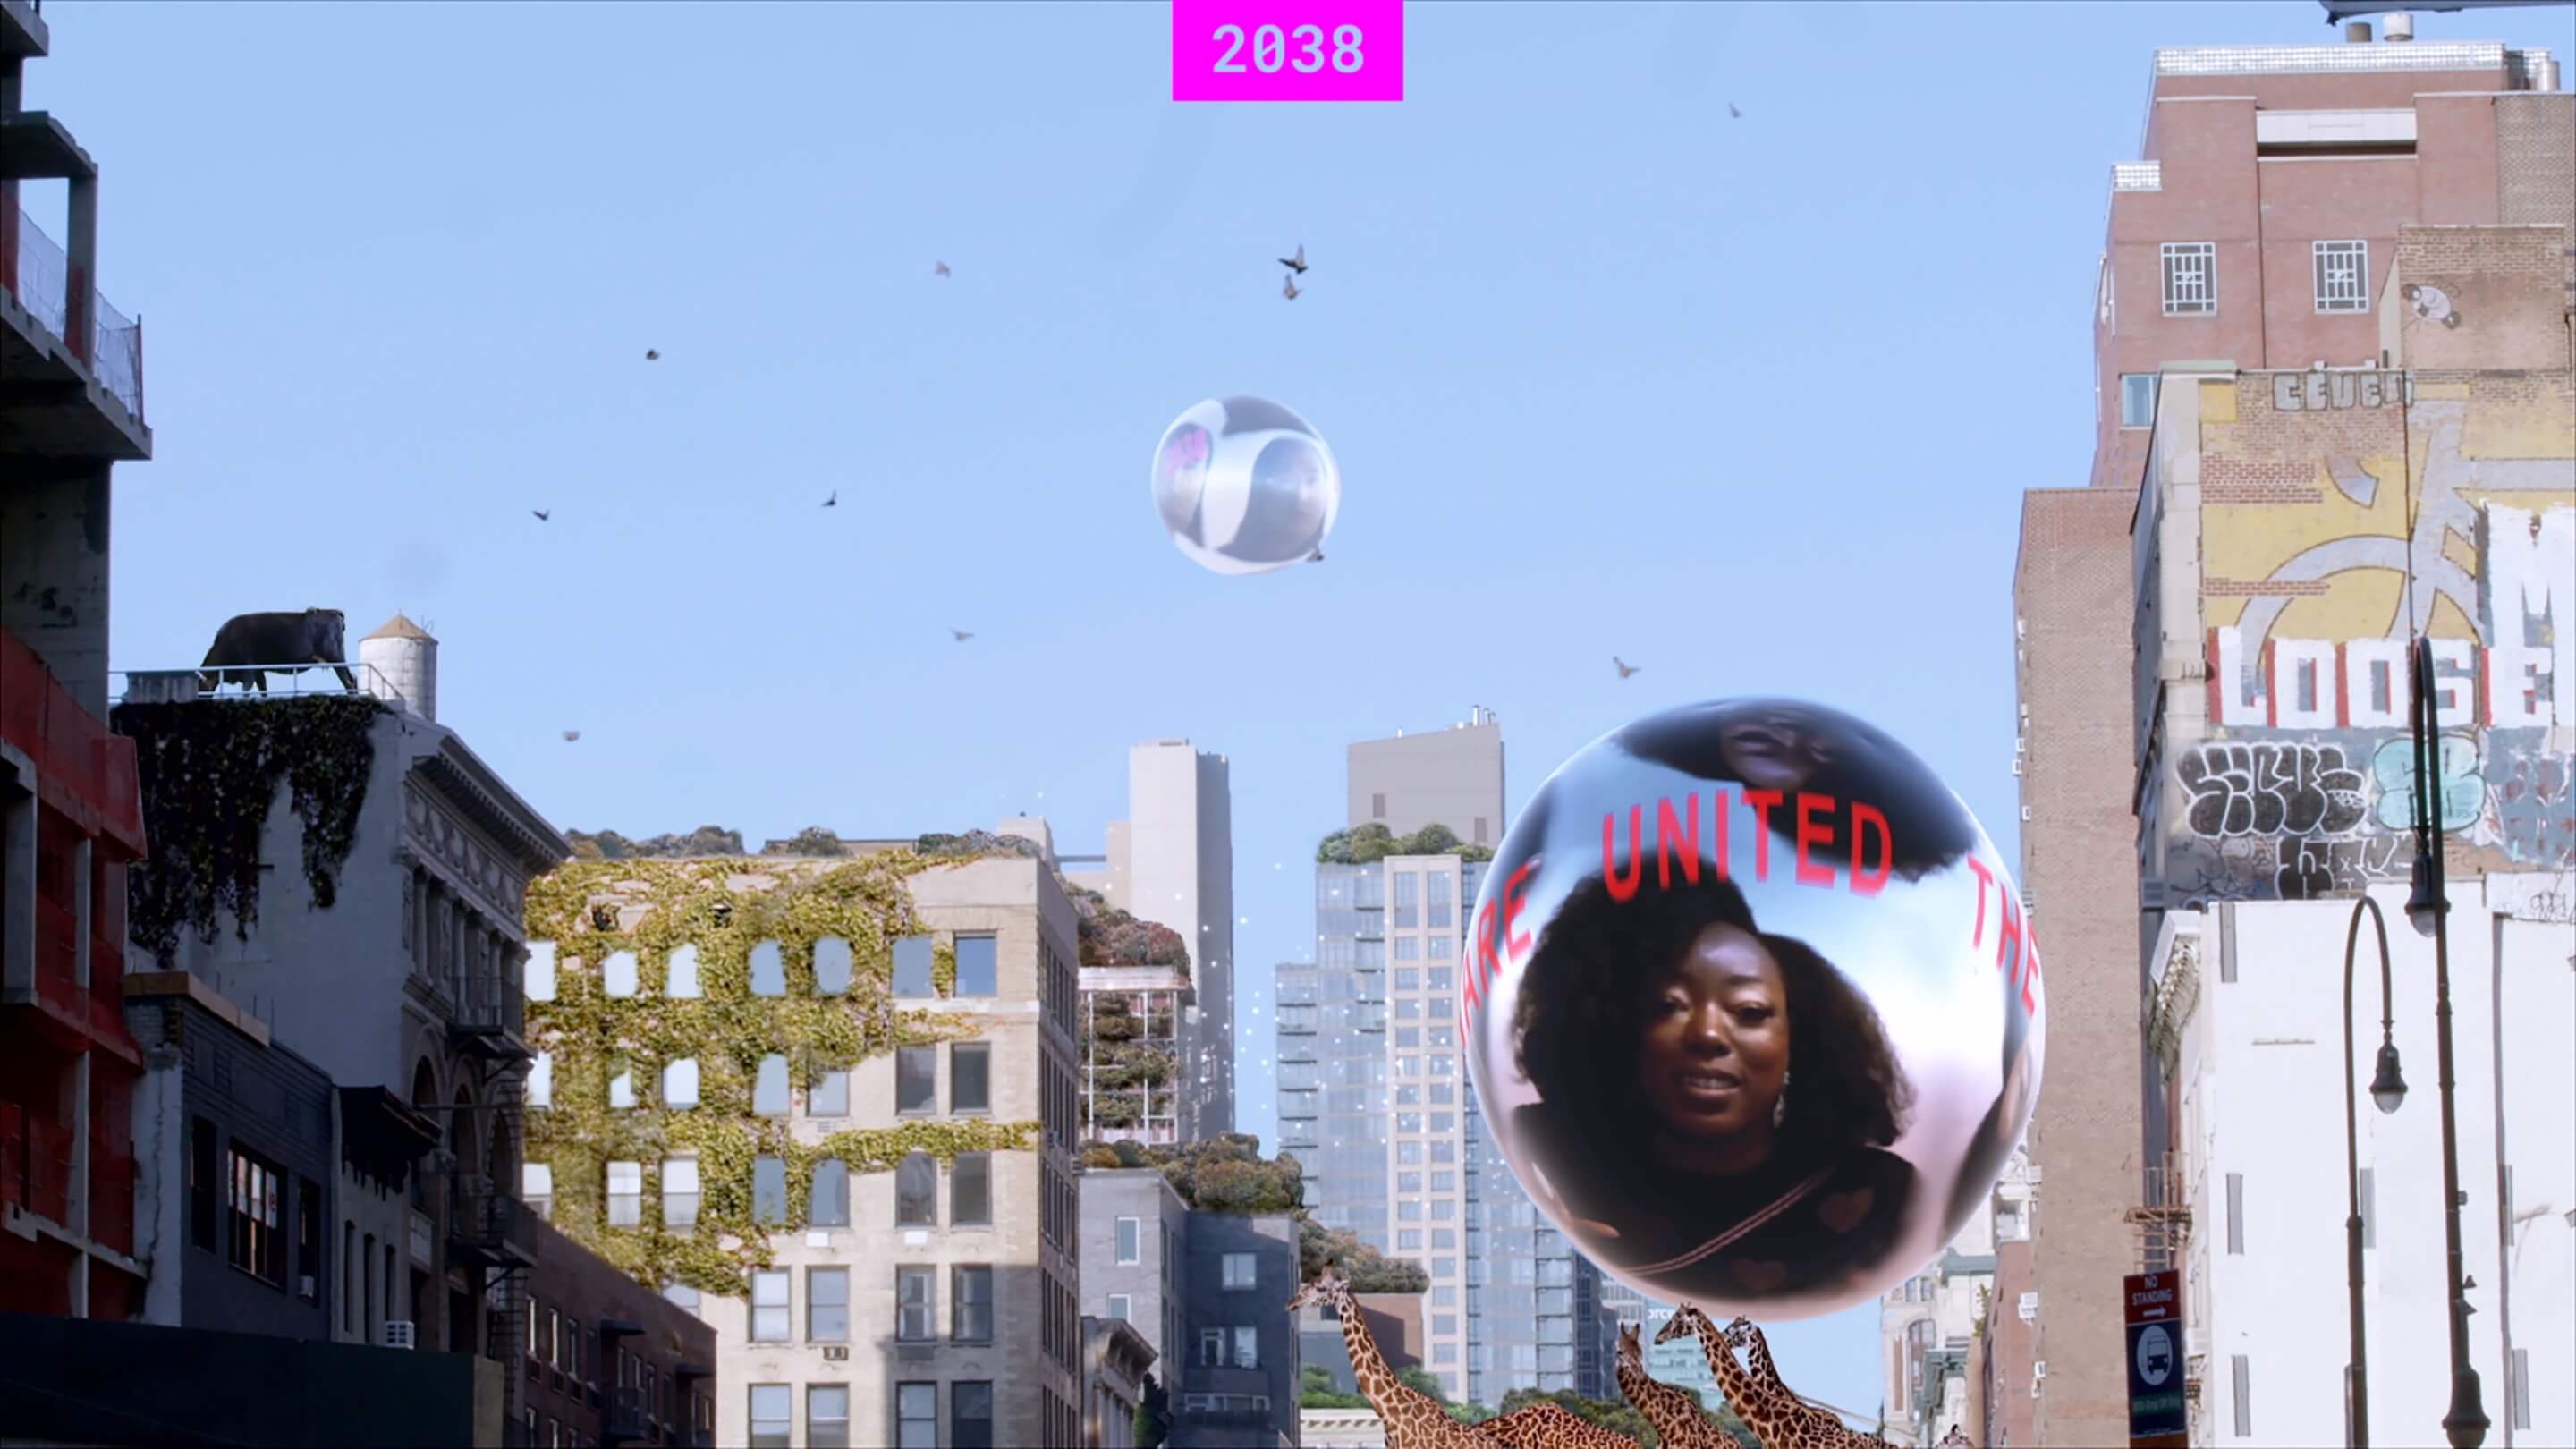 Film of a documentary with floating orbs on a city background